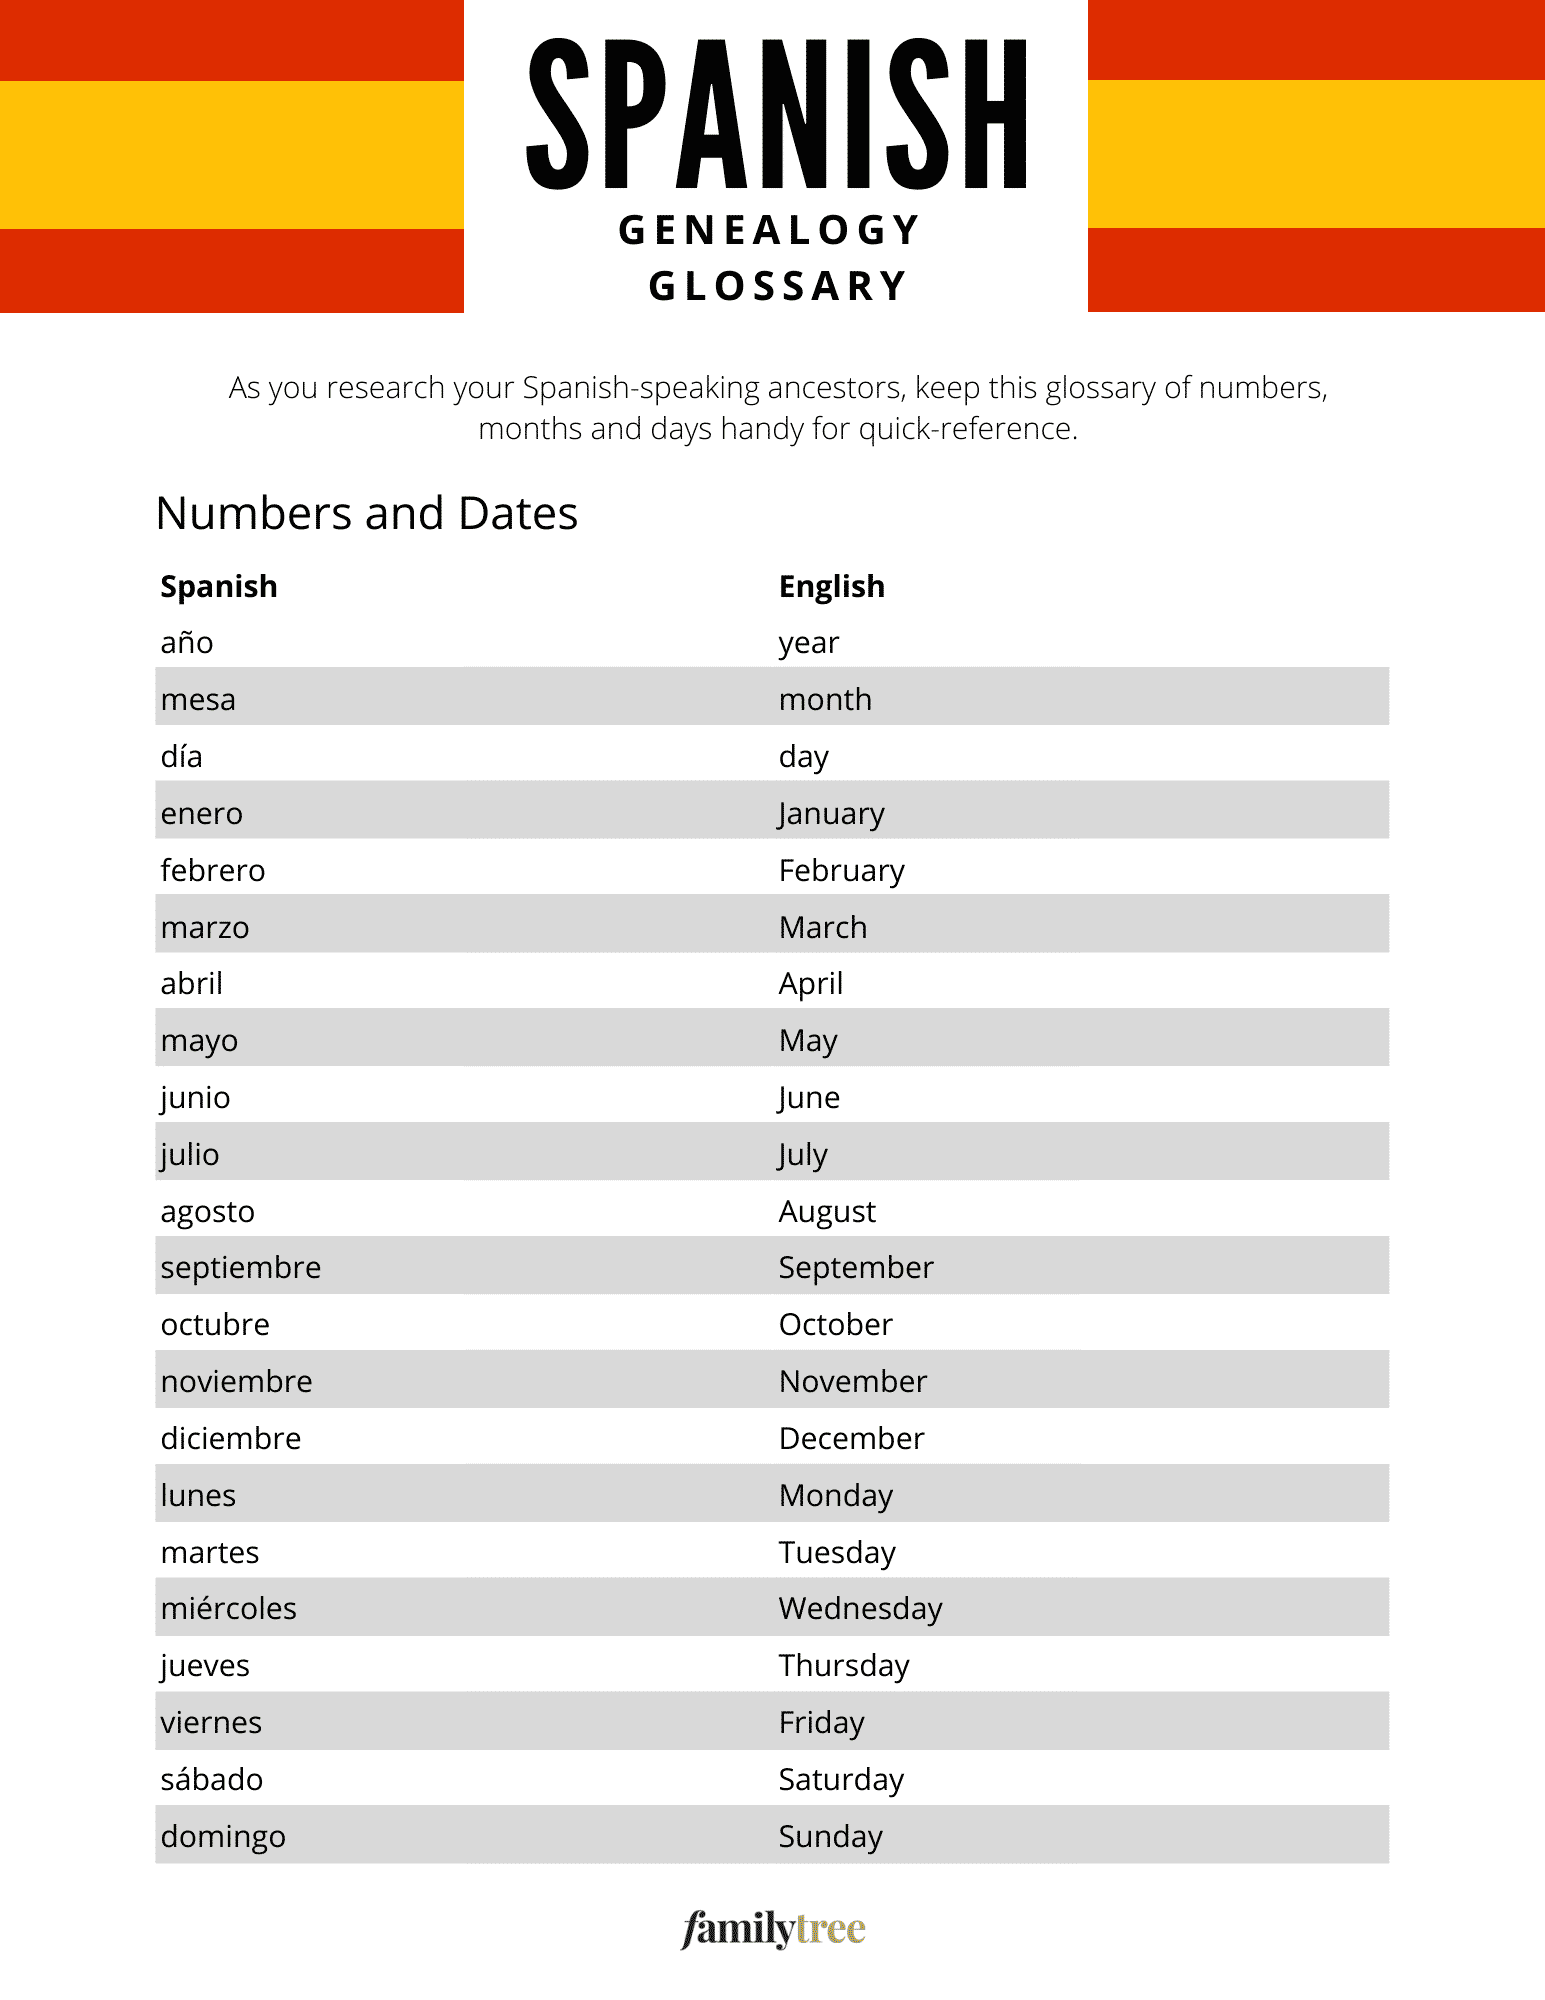 Downloadable glossary of Spanish numbers and dates.